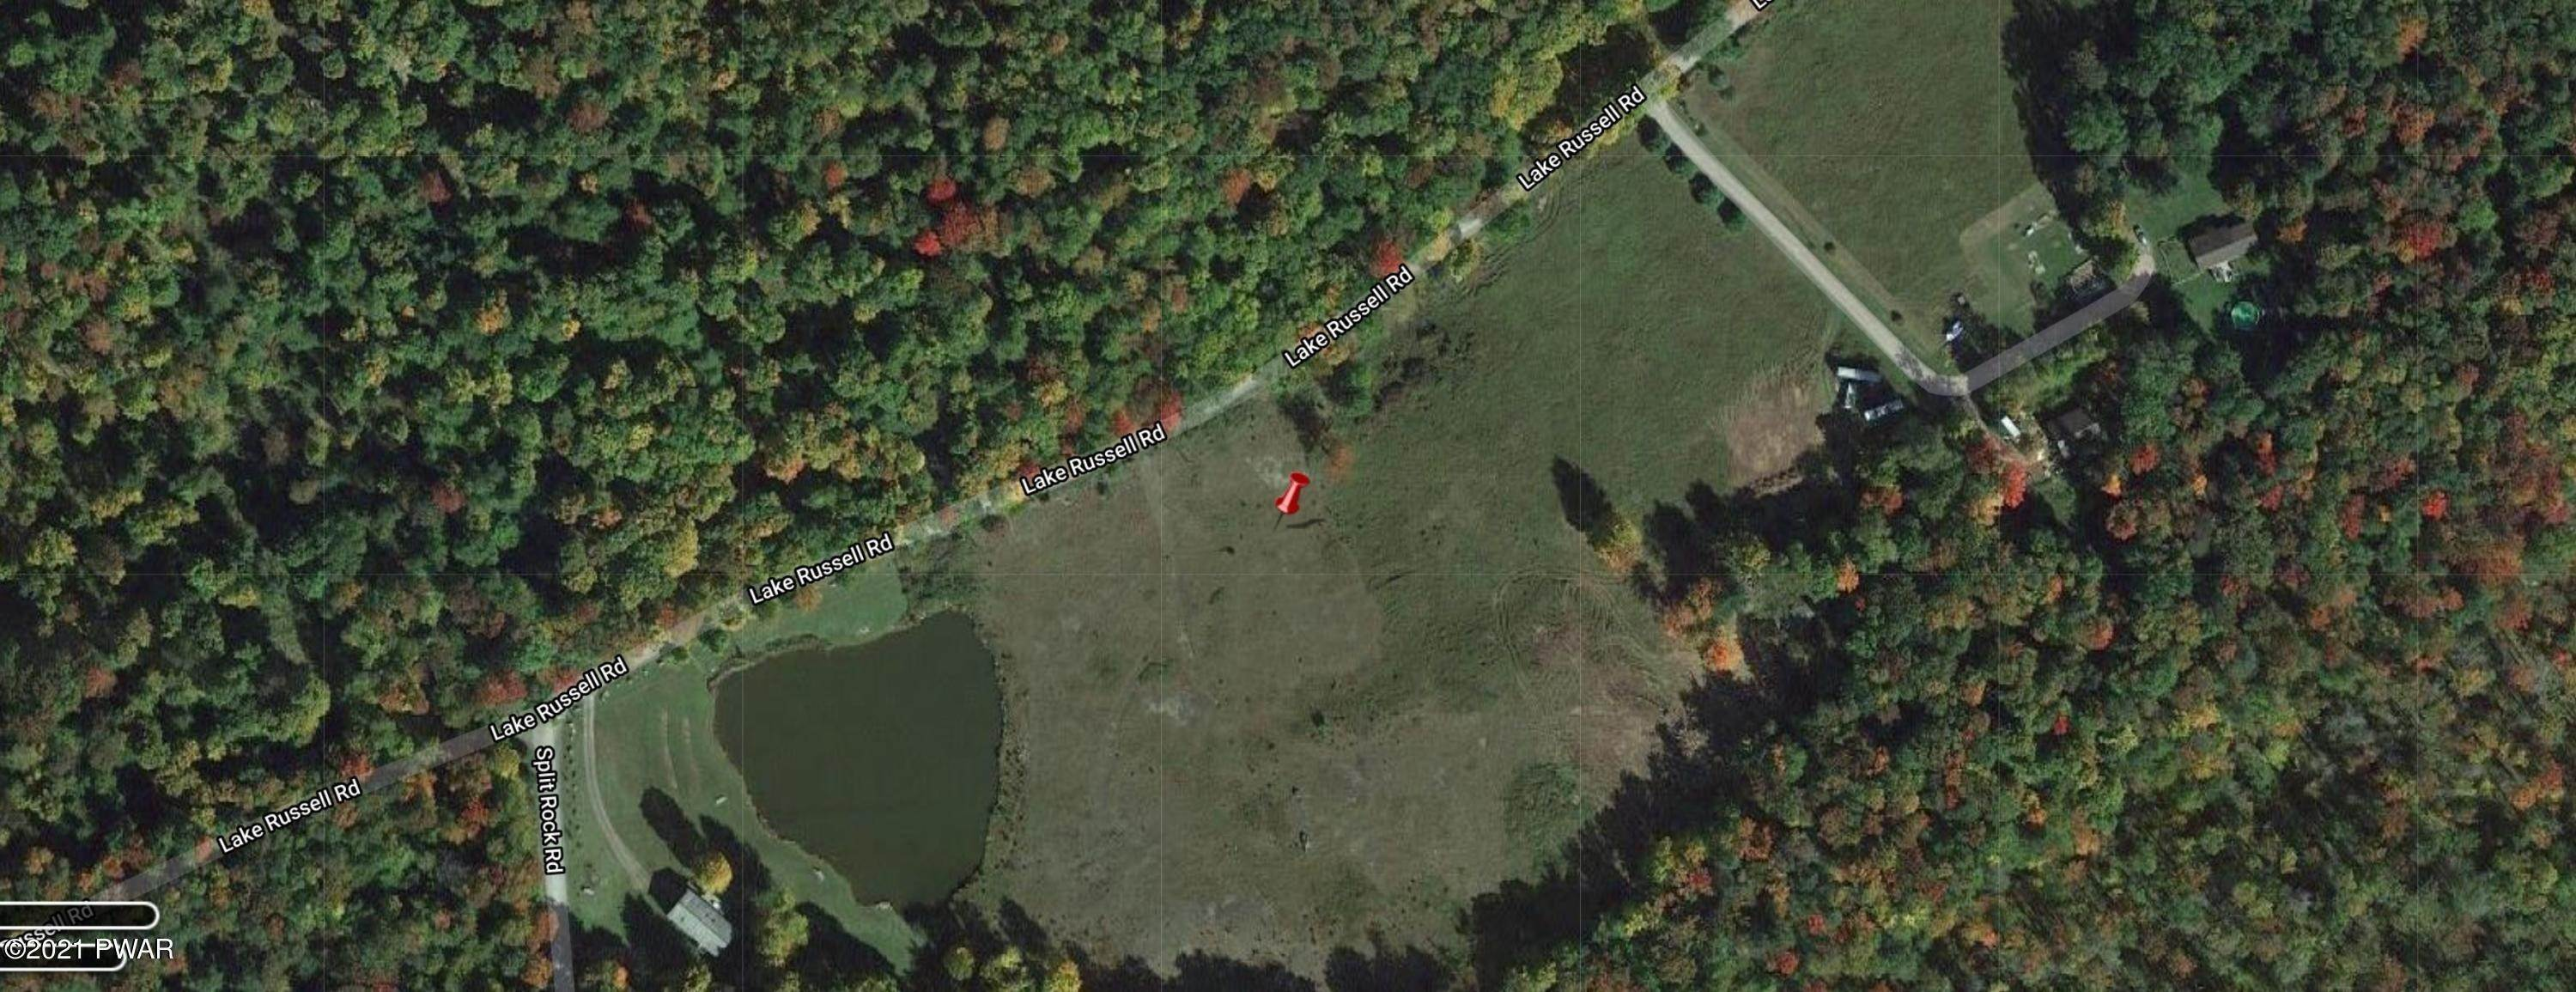 Land for Sale at Lot 3a Lake Russell Rd Newfoundland, Pennsylvania 18445 United States